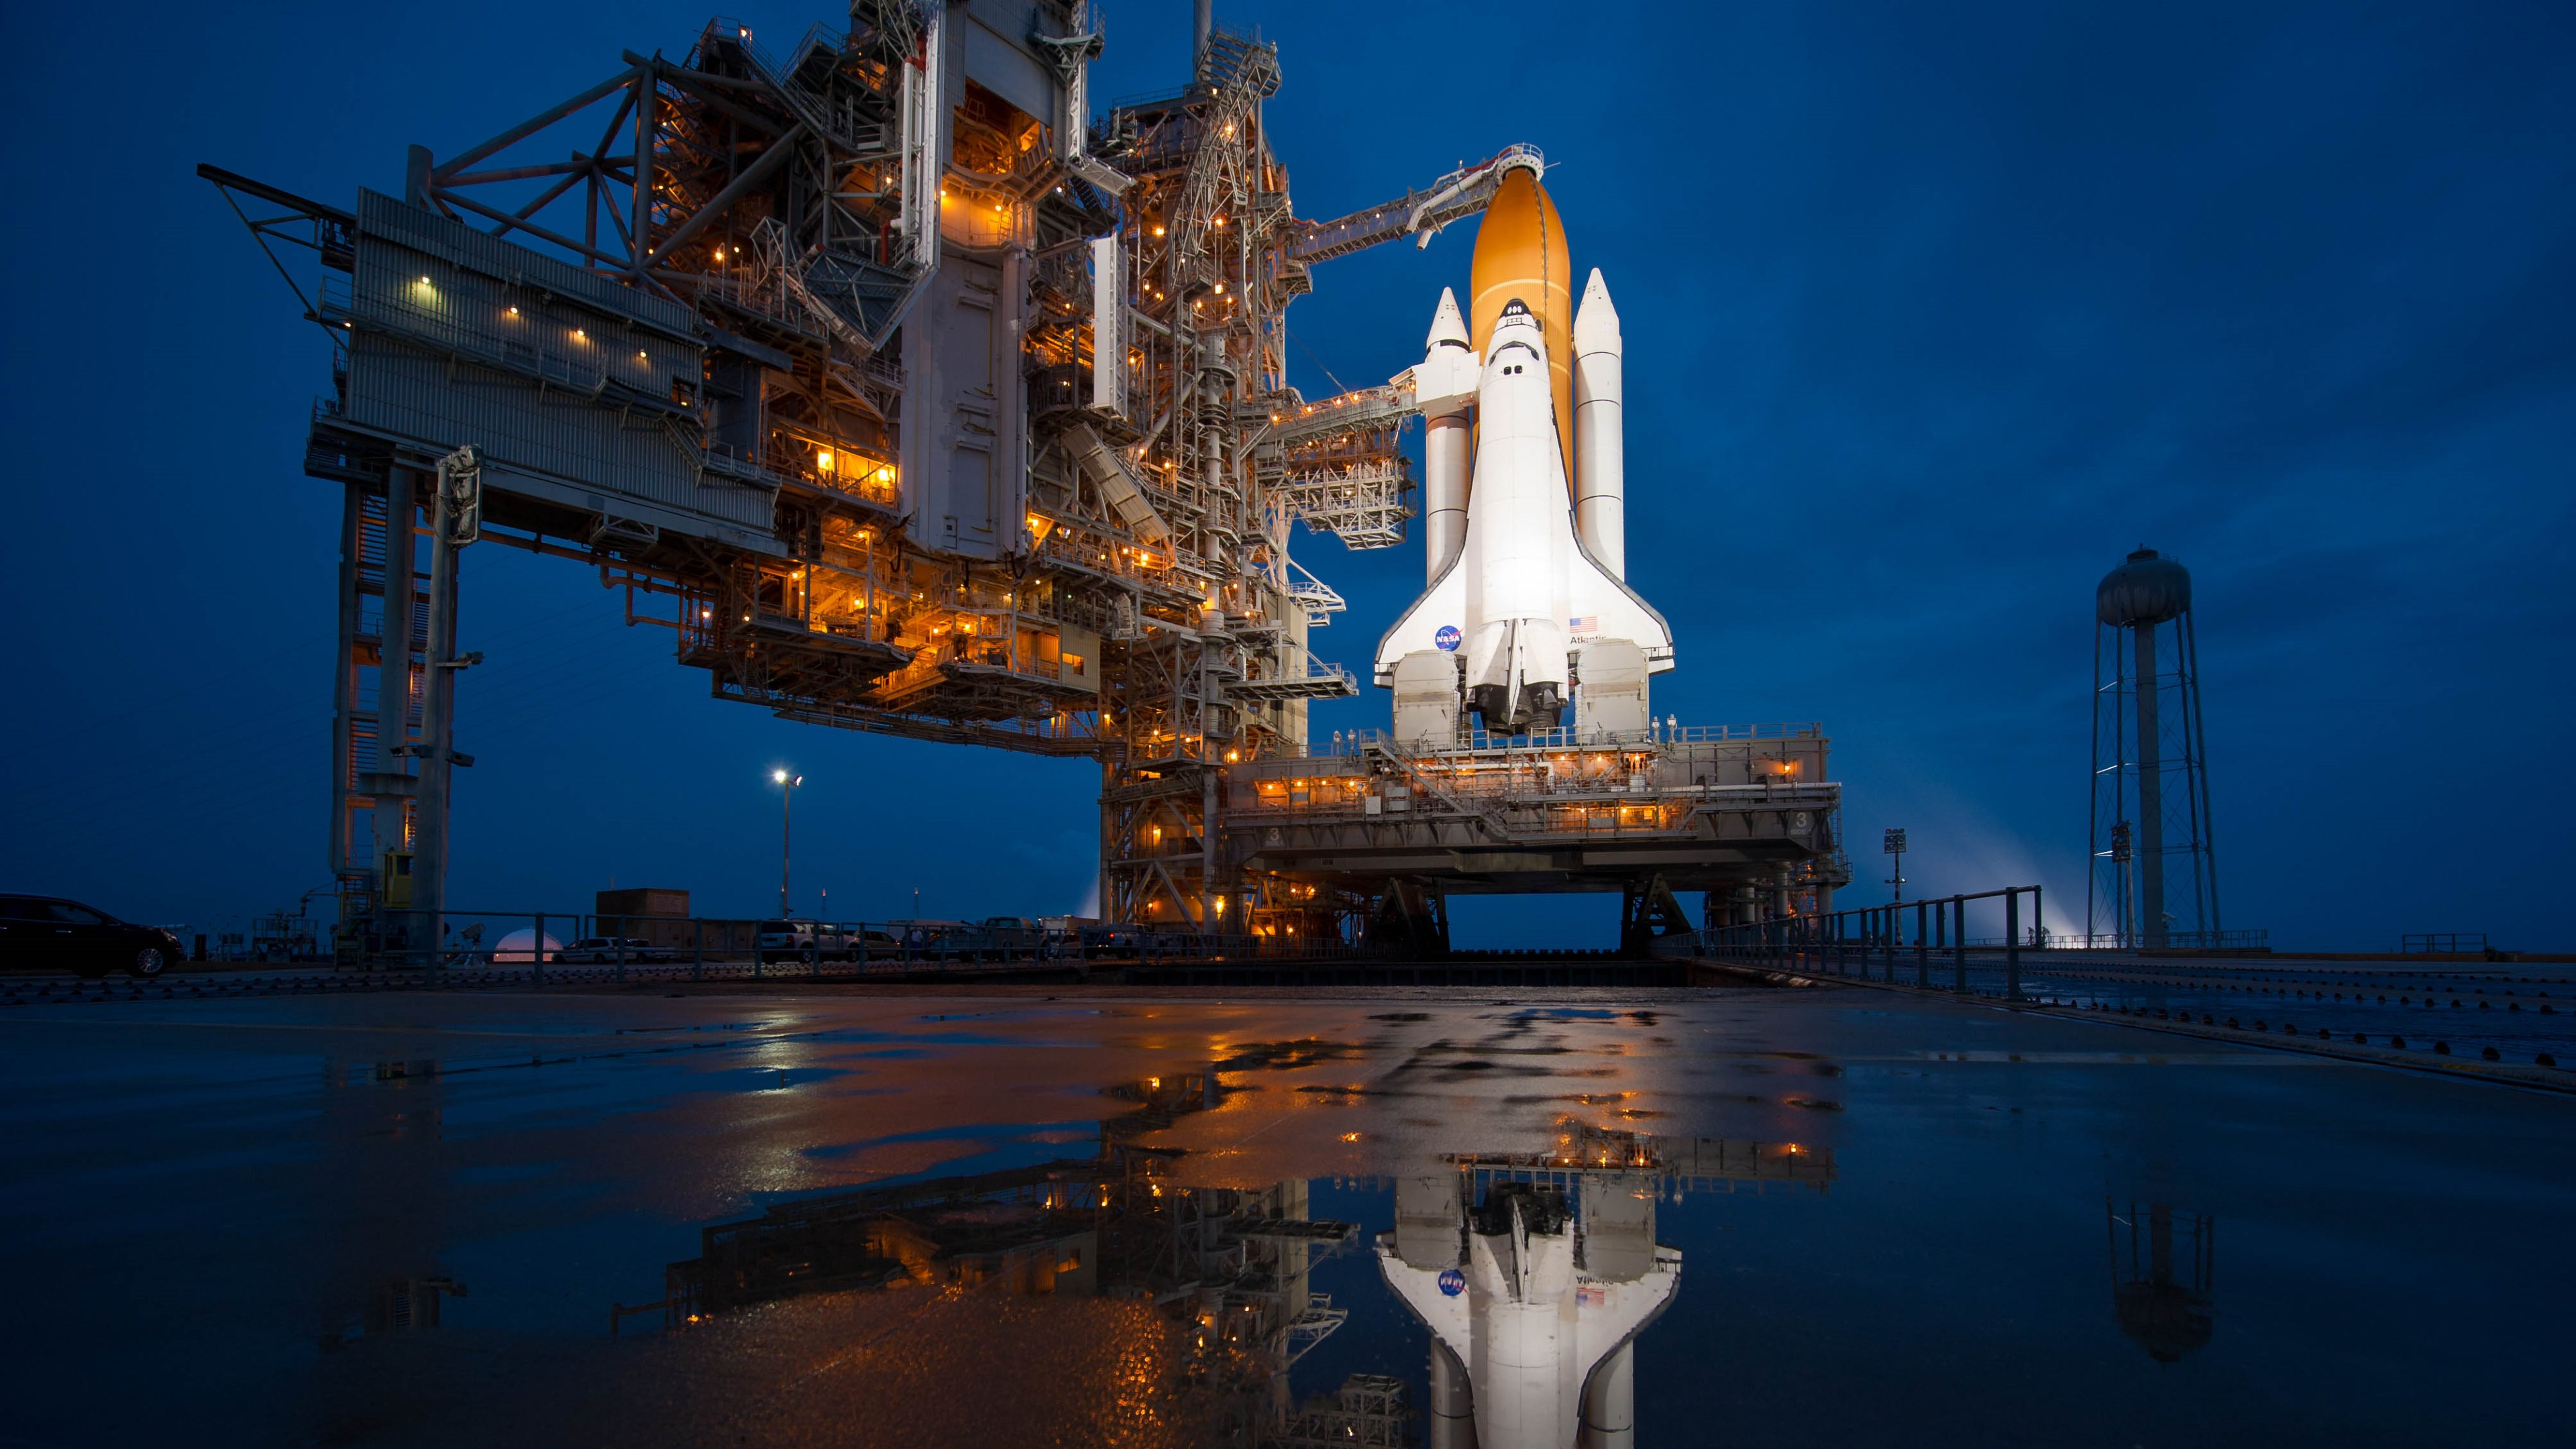 Download 14 Free Posters from NASA That Depict the Future